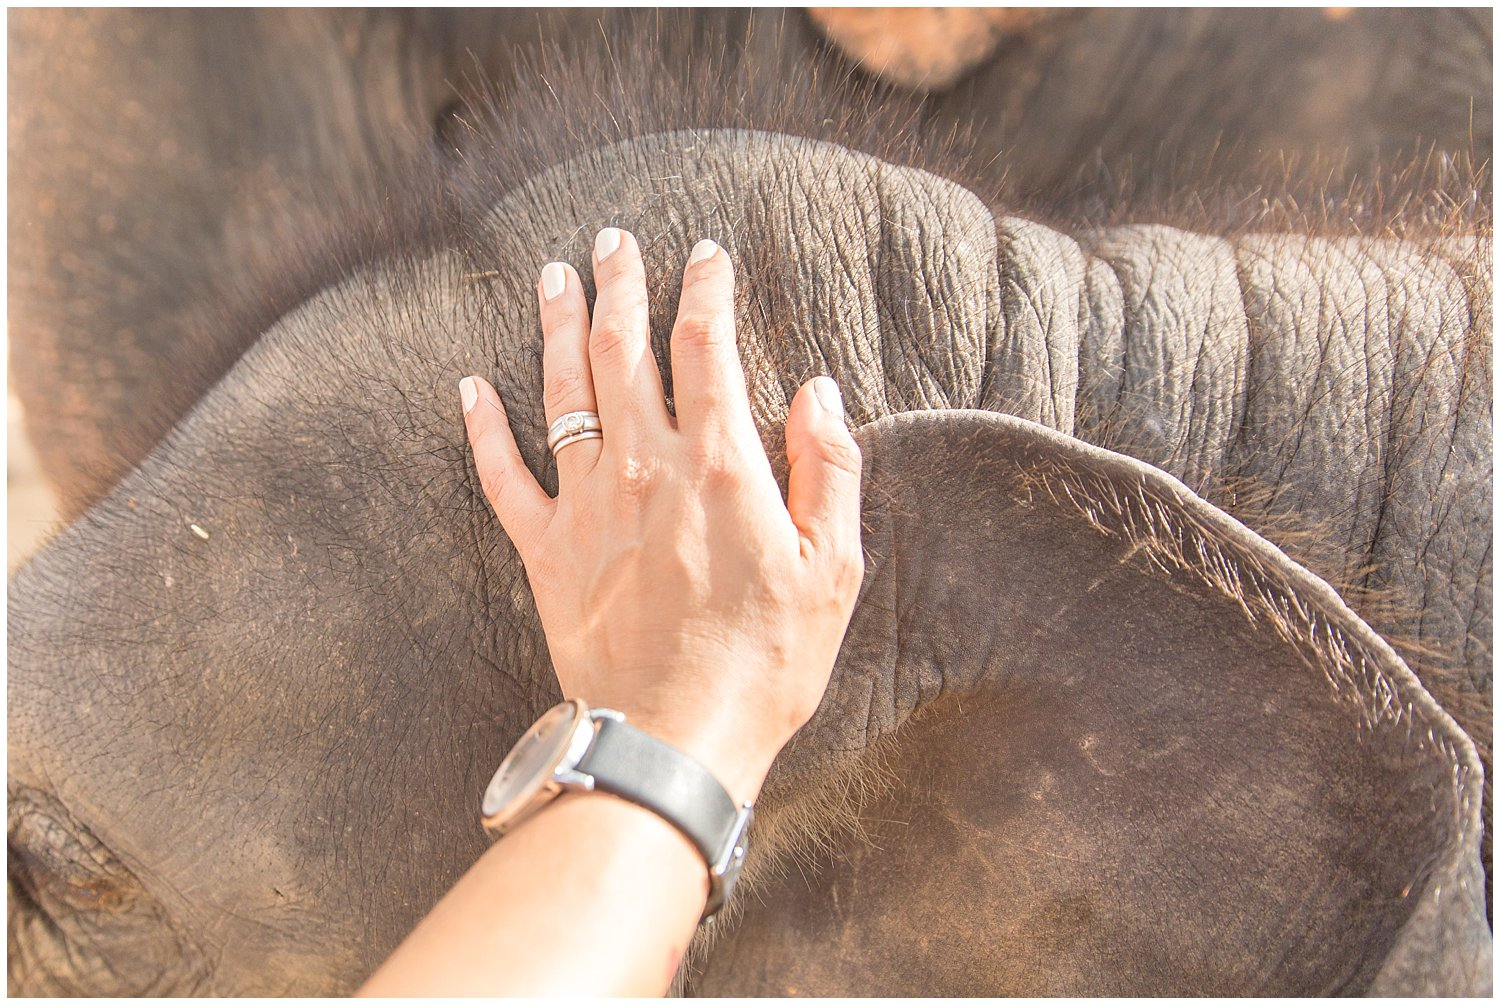 i'll never forget the tickle, prickly fuzz of this playful baby elephant! SO CUTE.